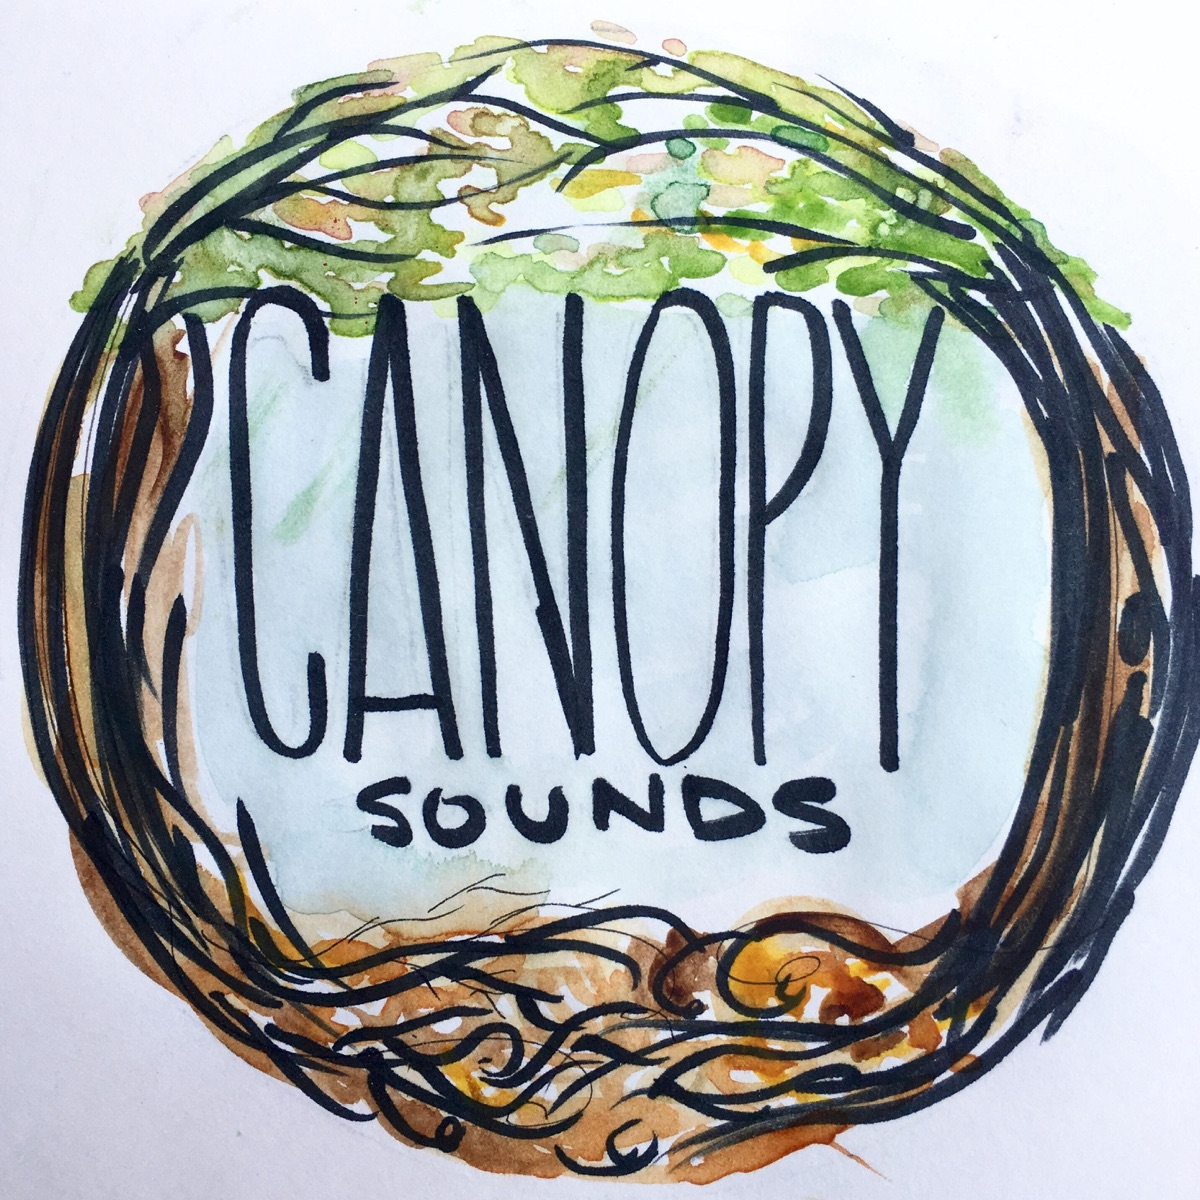 Canopy Sounds 76: trustless